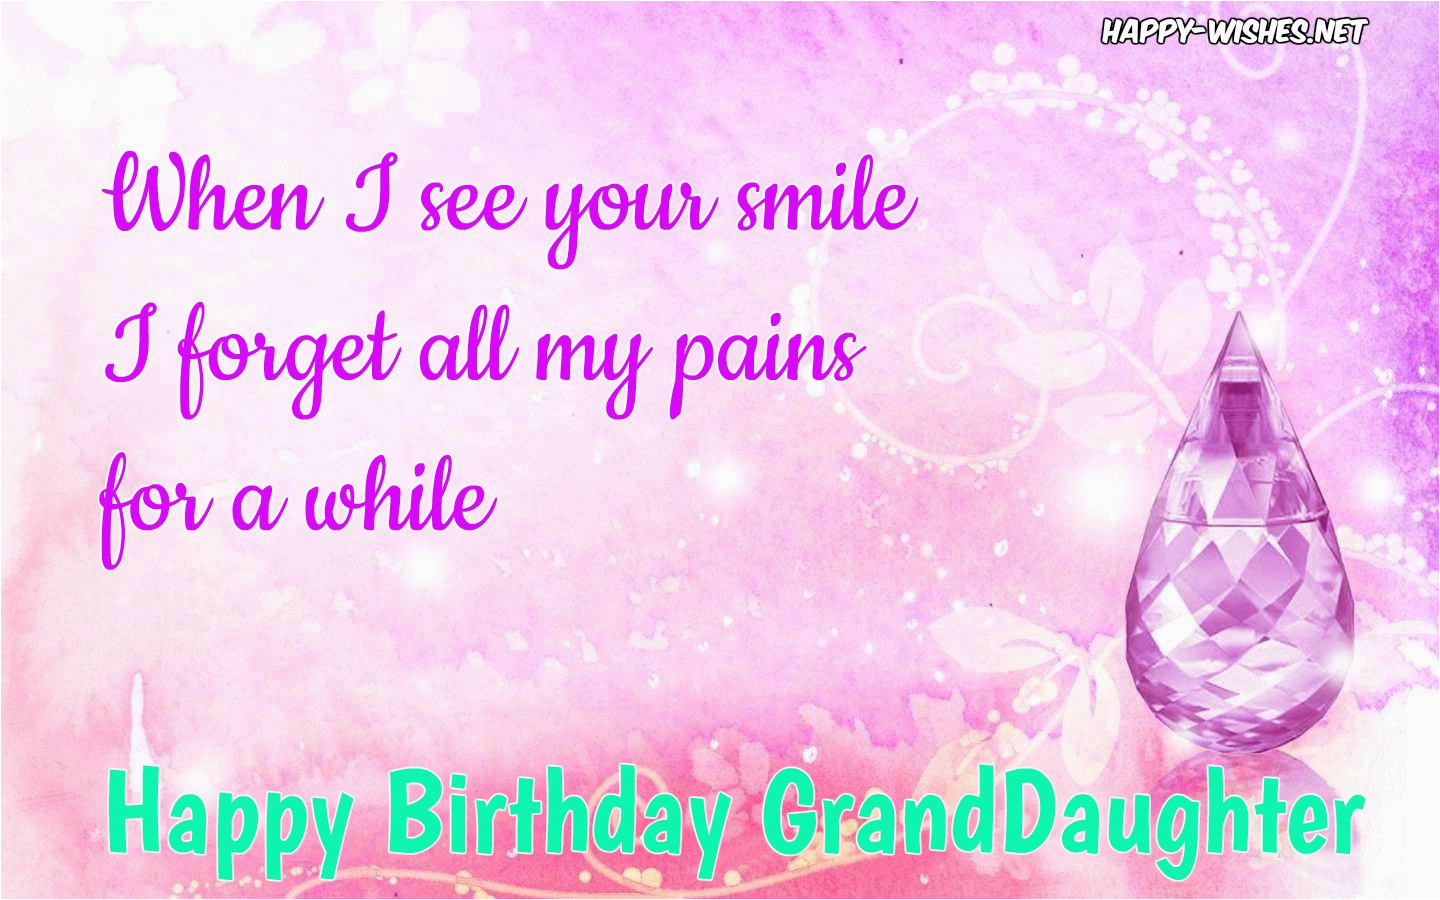 happy birthday wishes granddaughter quotes images